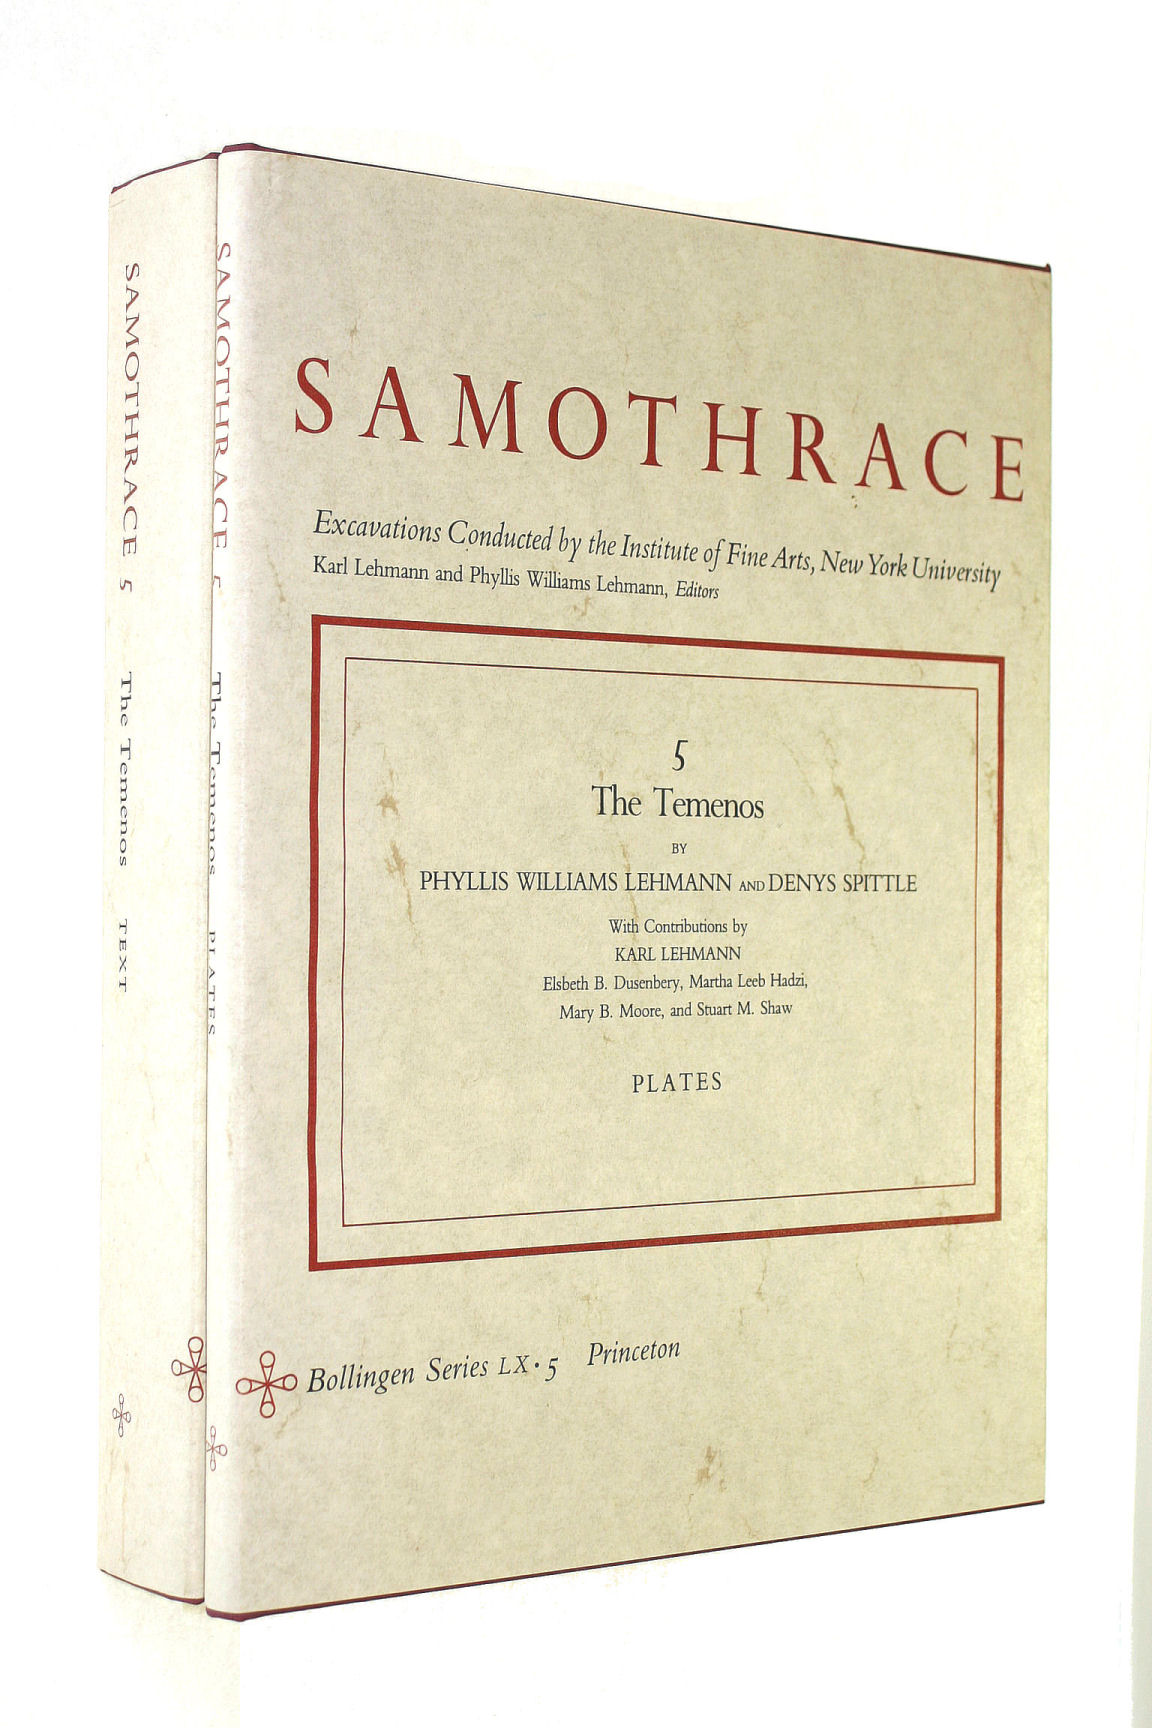 Image for Samothrace, Volume 5: The Temenos (Two Volumes, Plates and Text): The Temenos (Plates and Text) v. 5